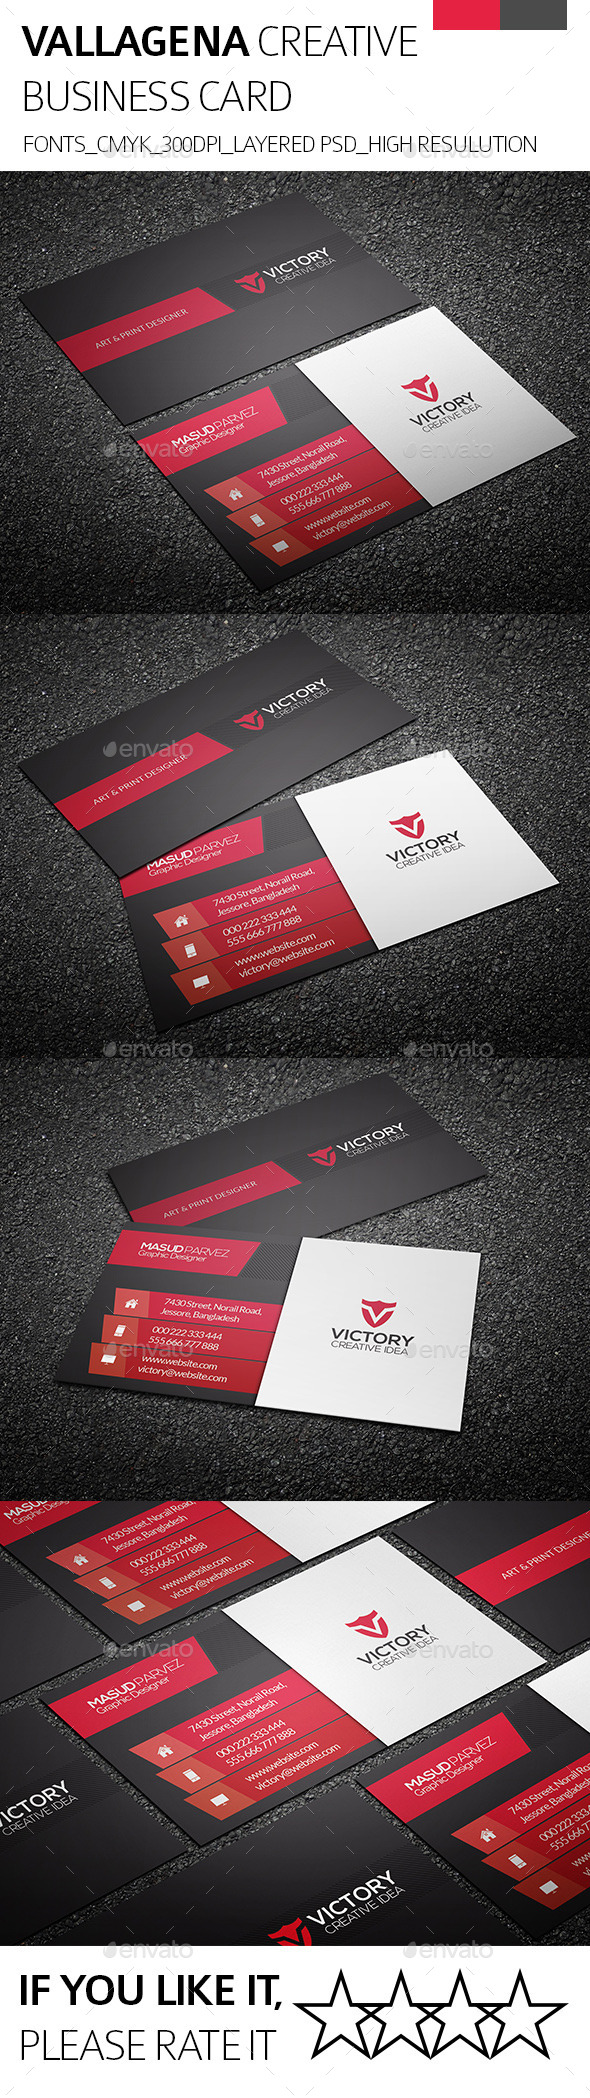 GraphicRiver Vallagena & Creative Business Card 9089981